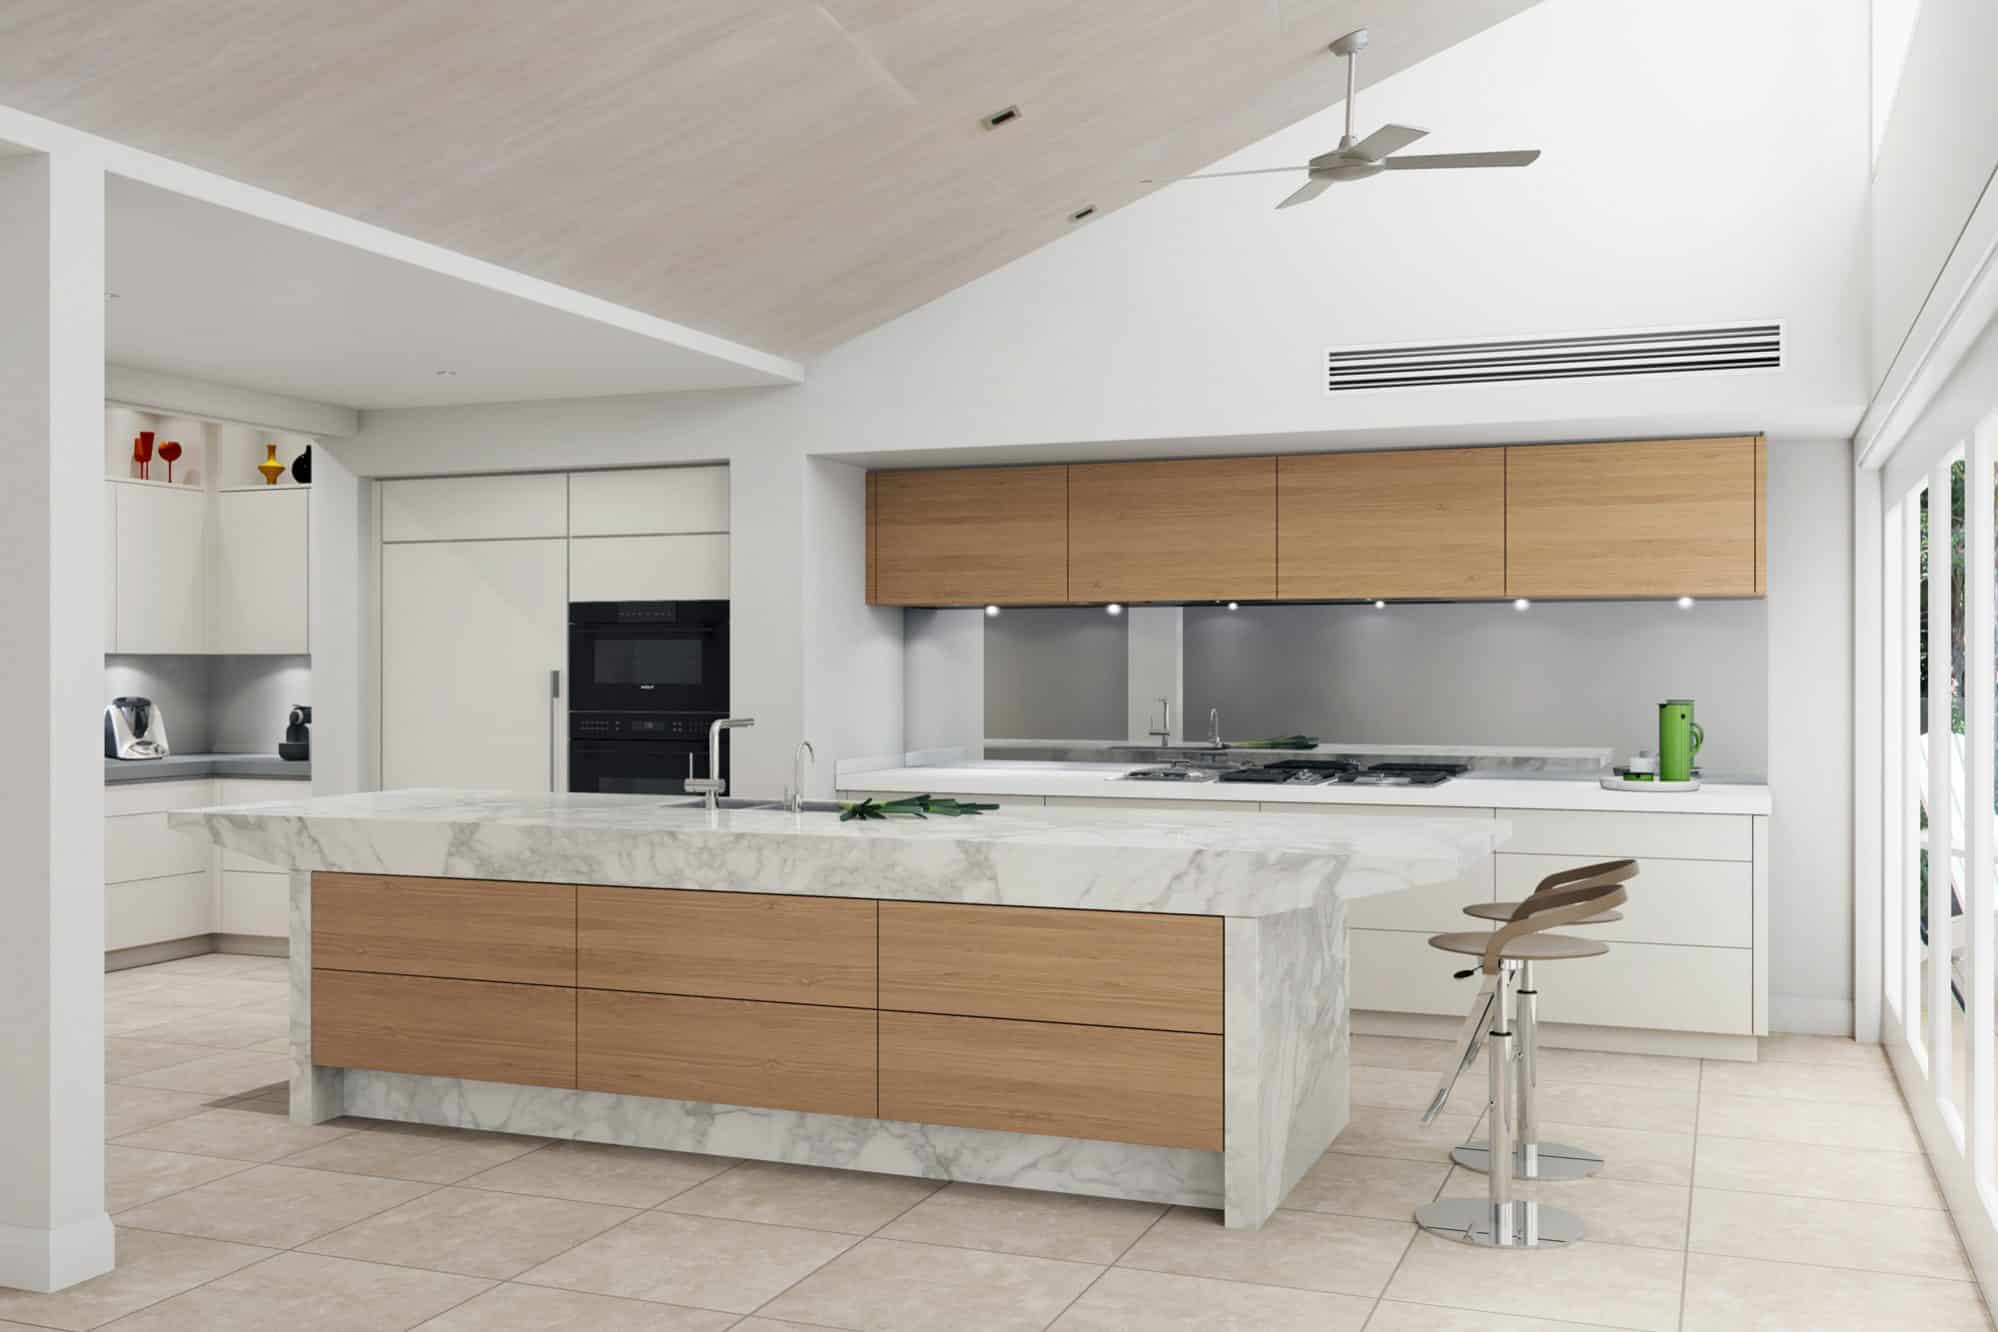 Artist's impression of the kitchen